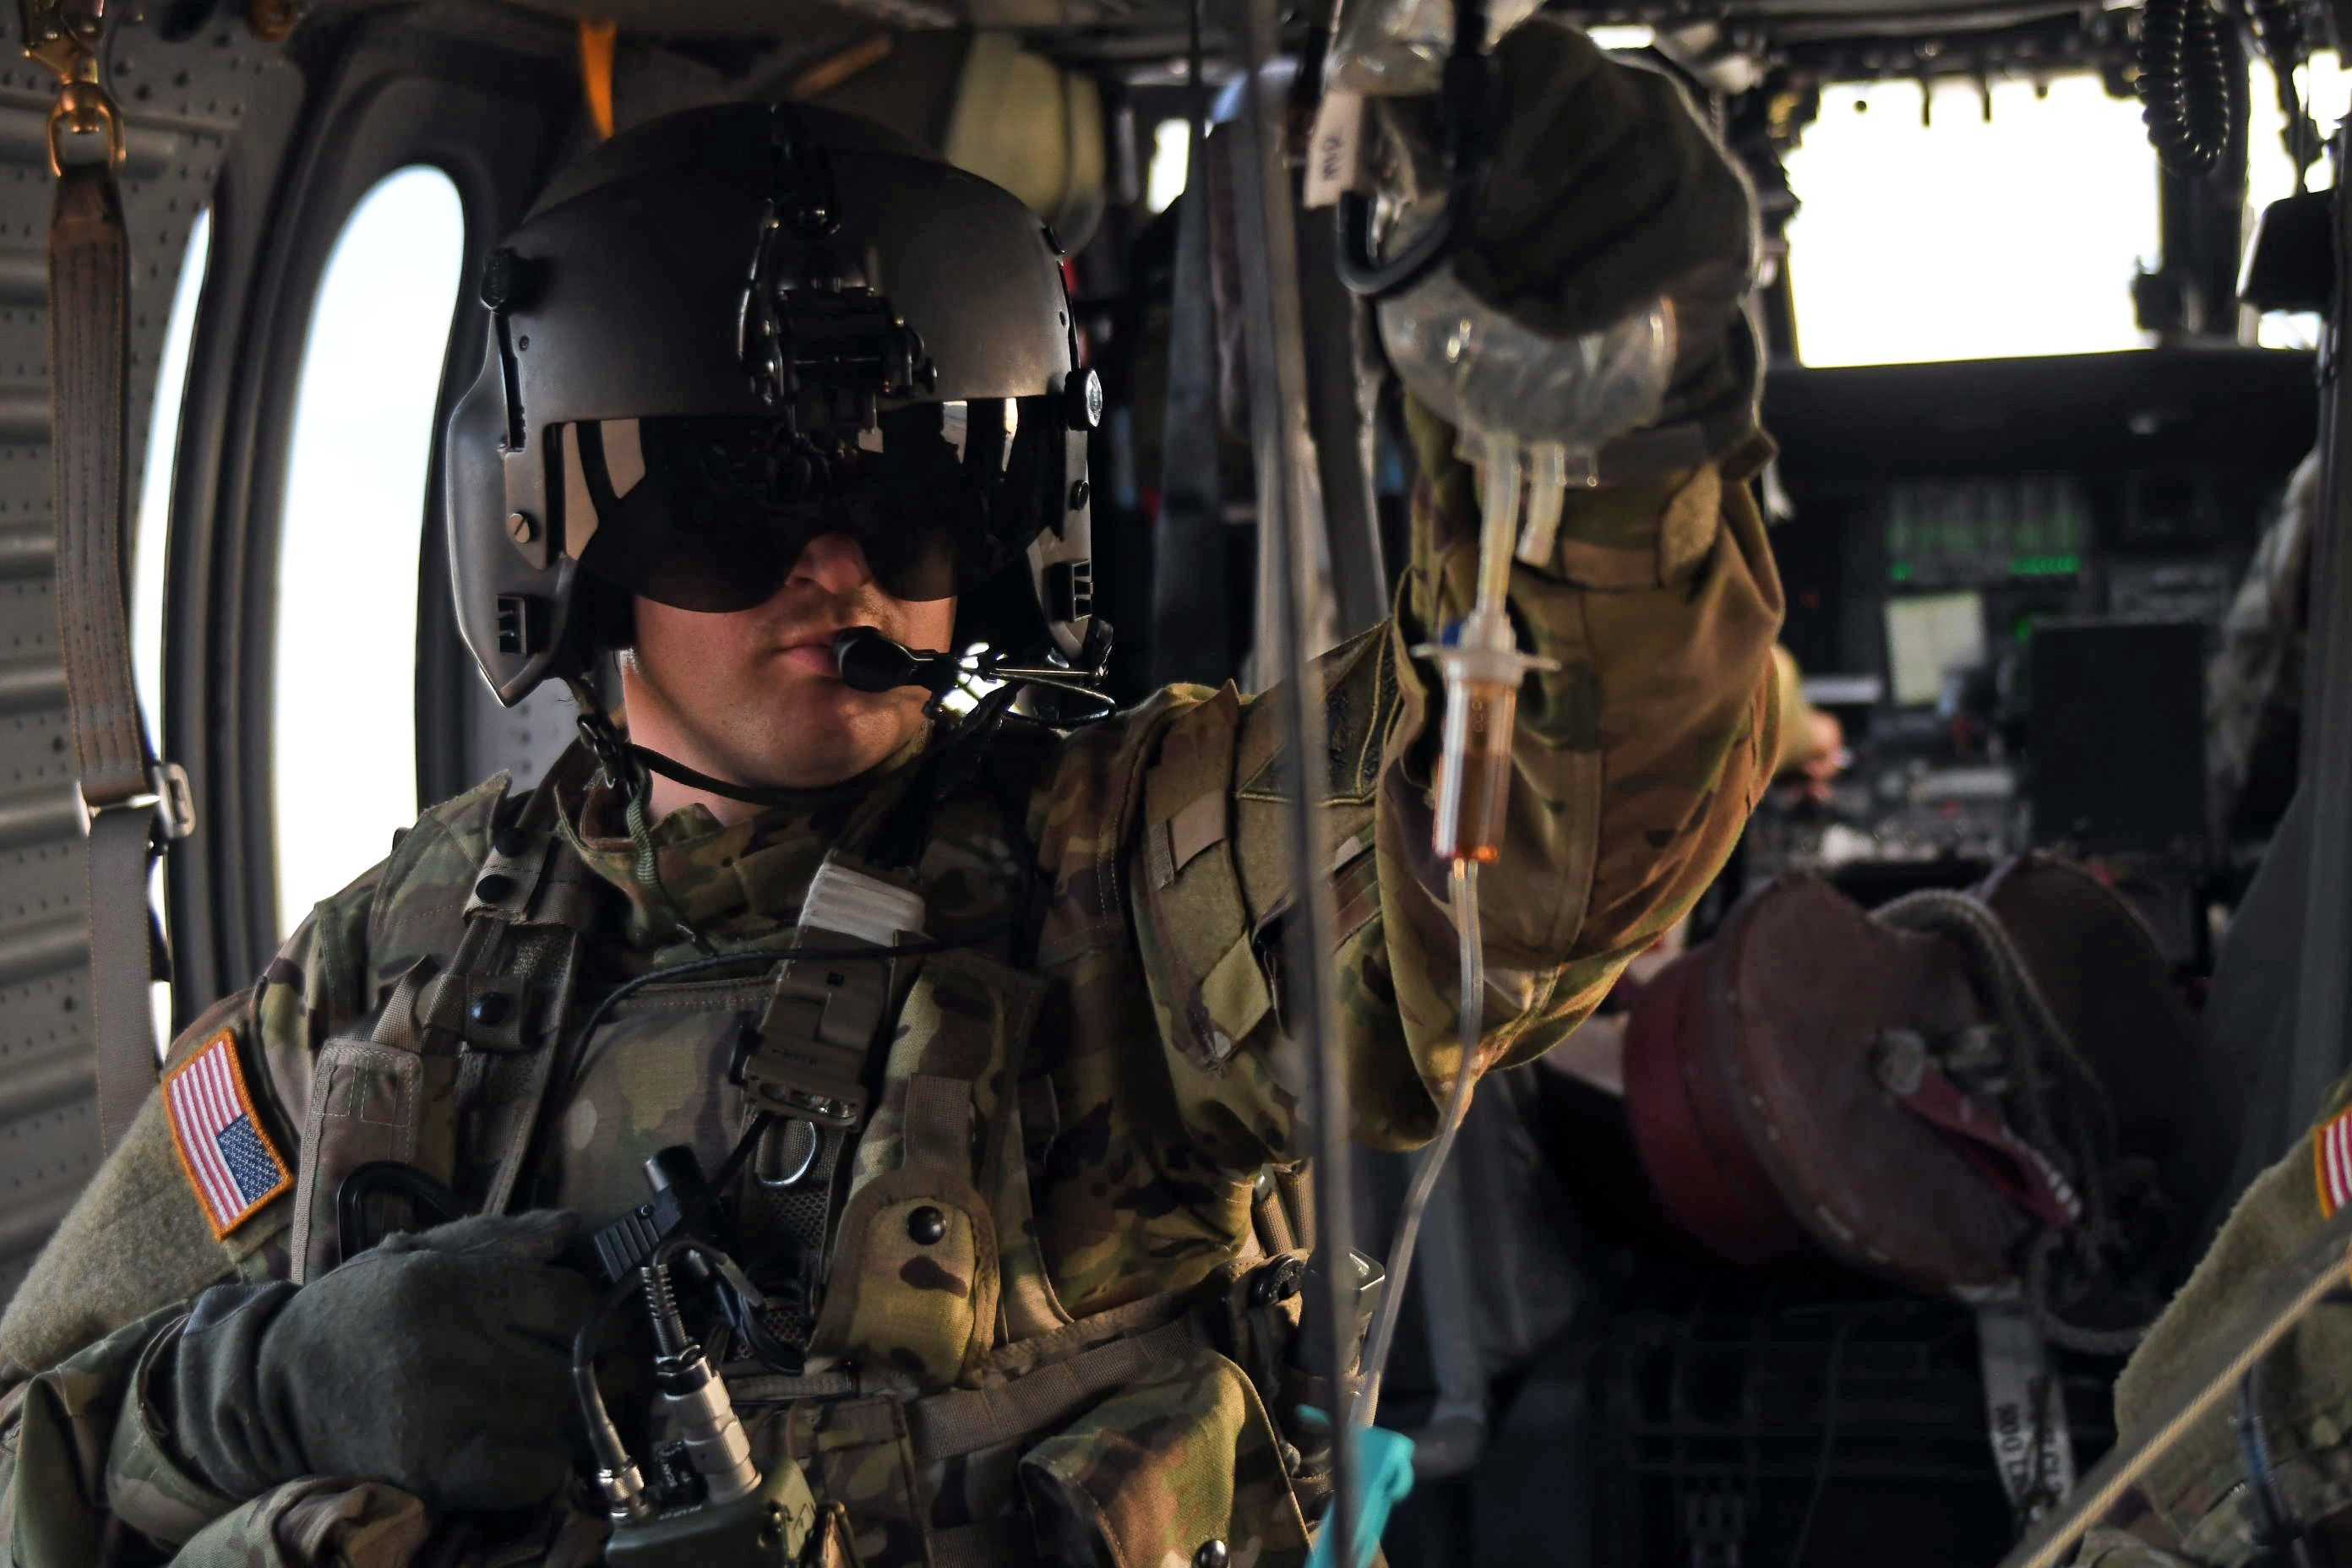 Army aviation regiments test their mettle at Fort Bliss